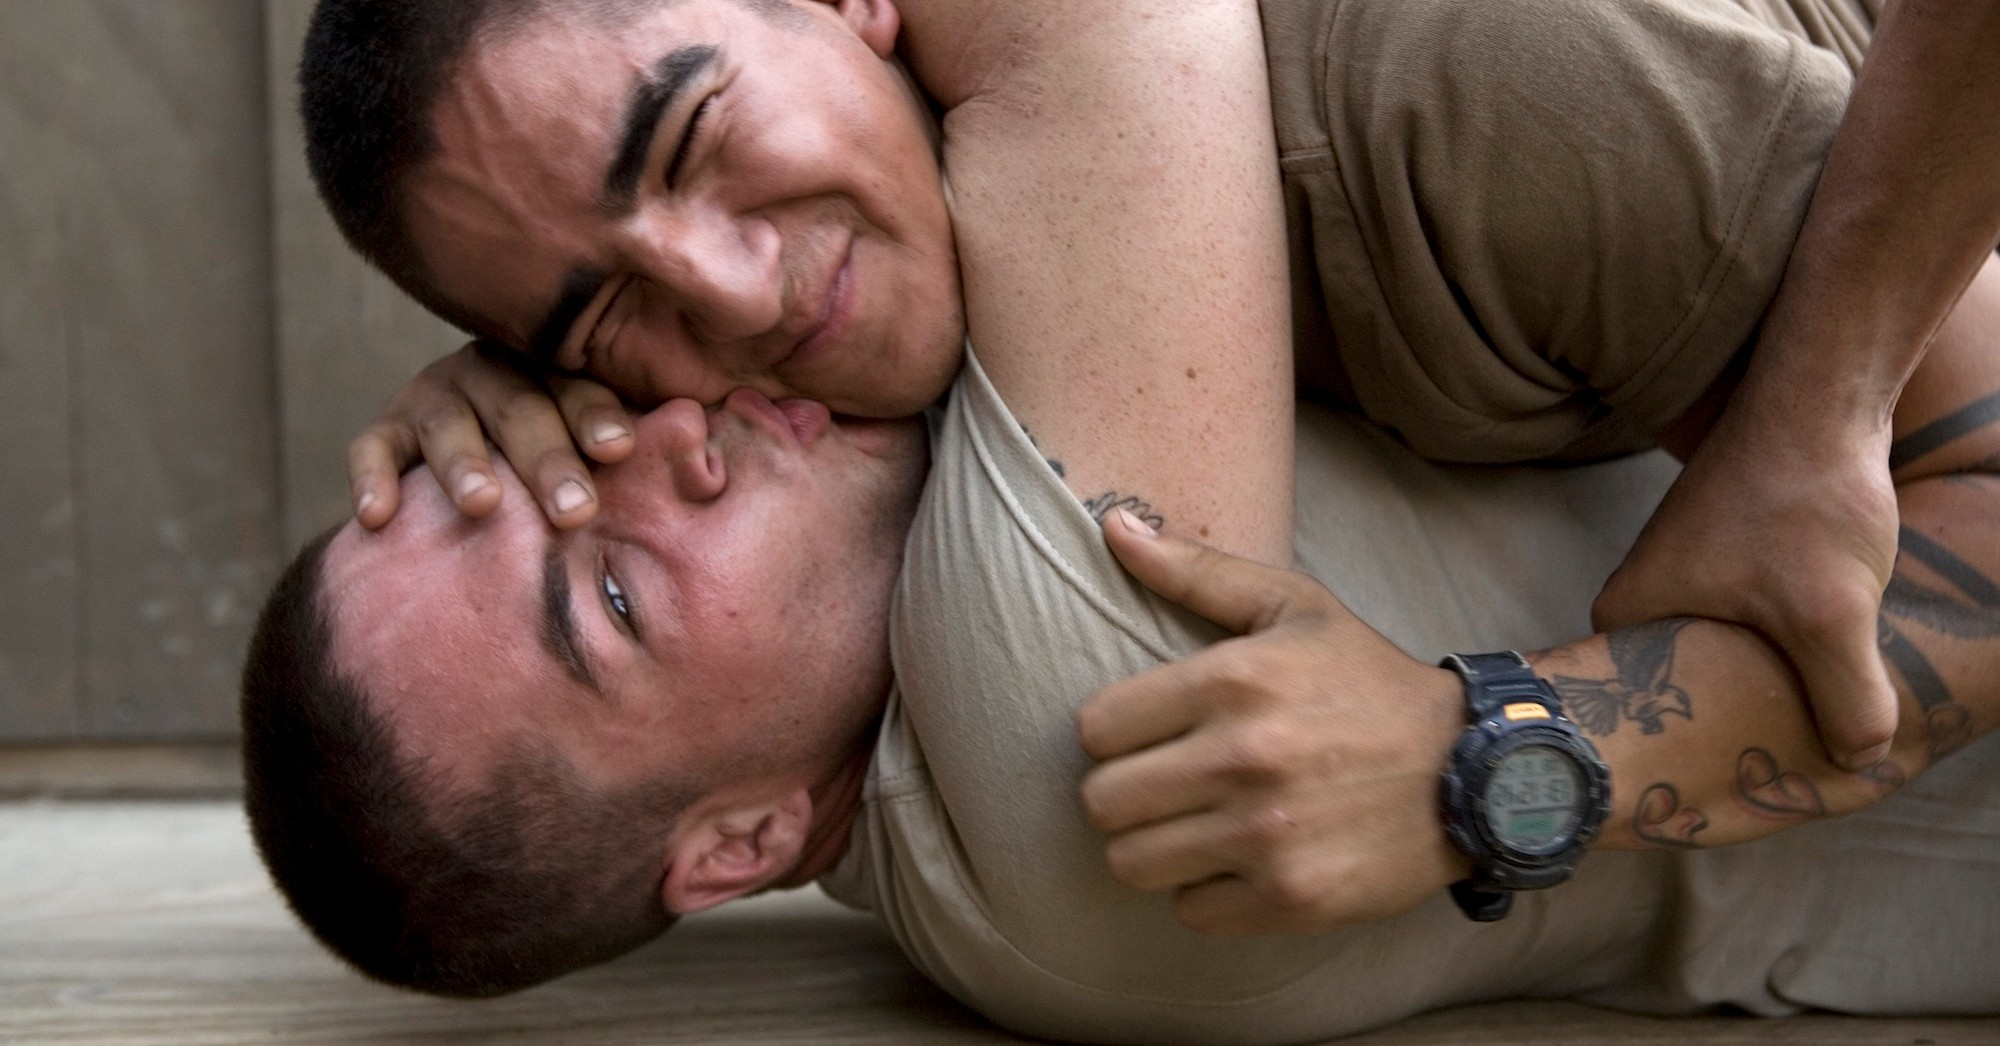 These Photos Are a Tender Look at Male Sexuality and War